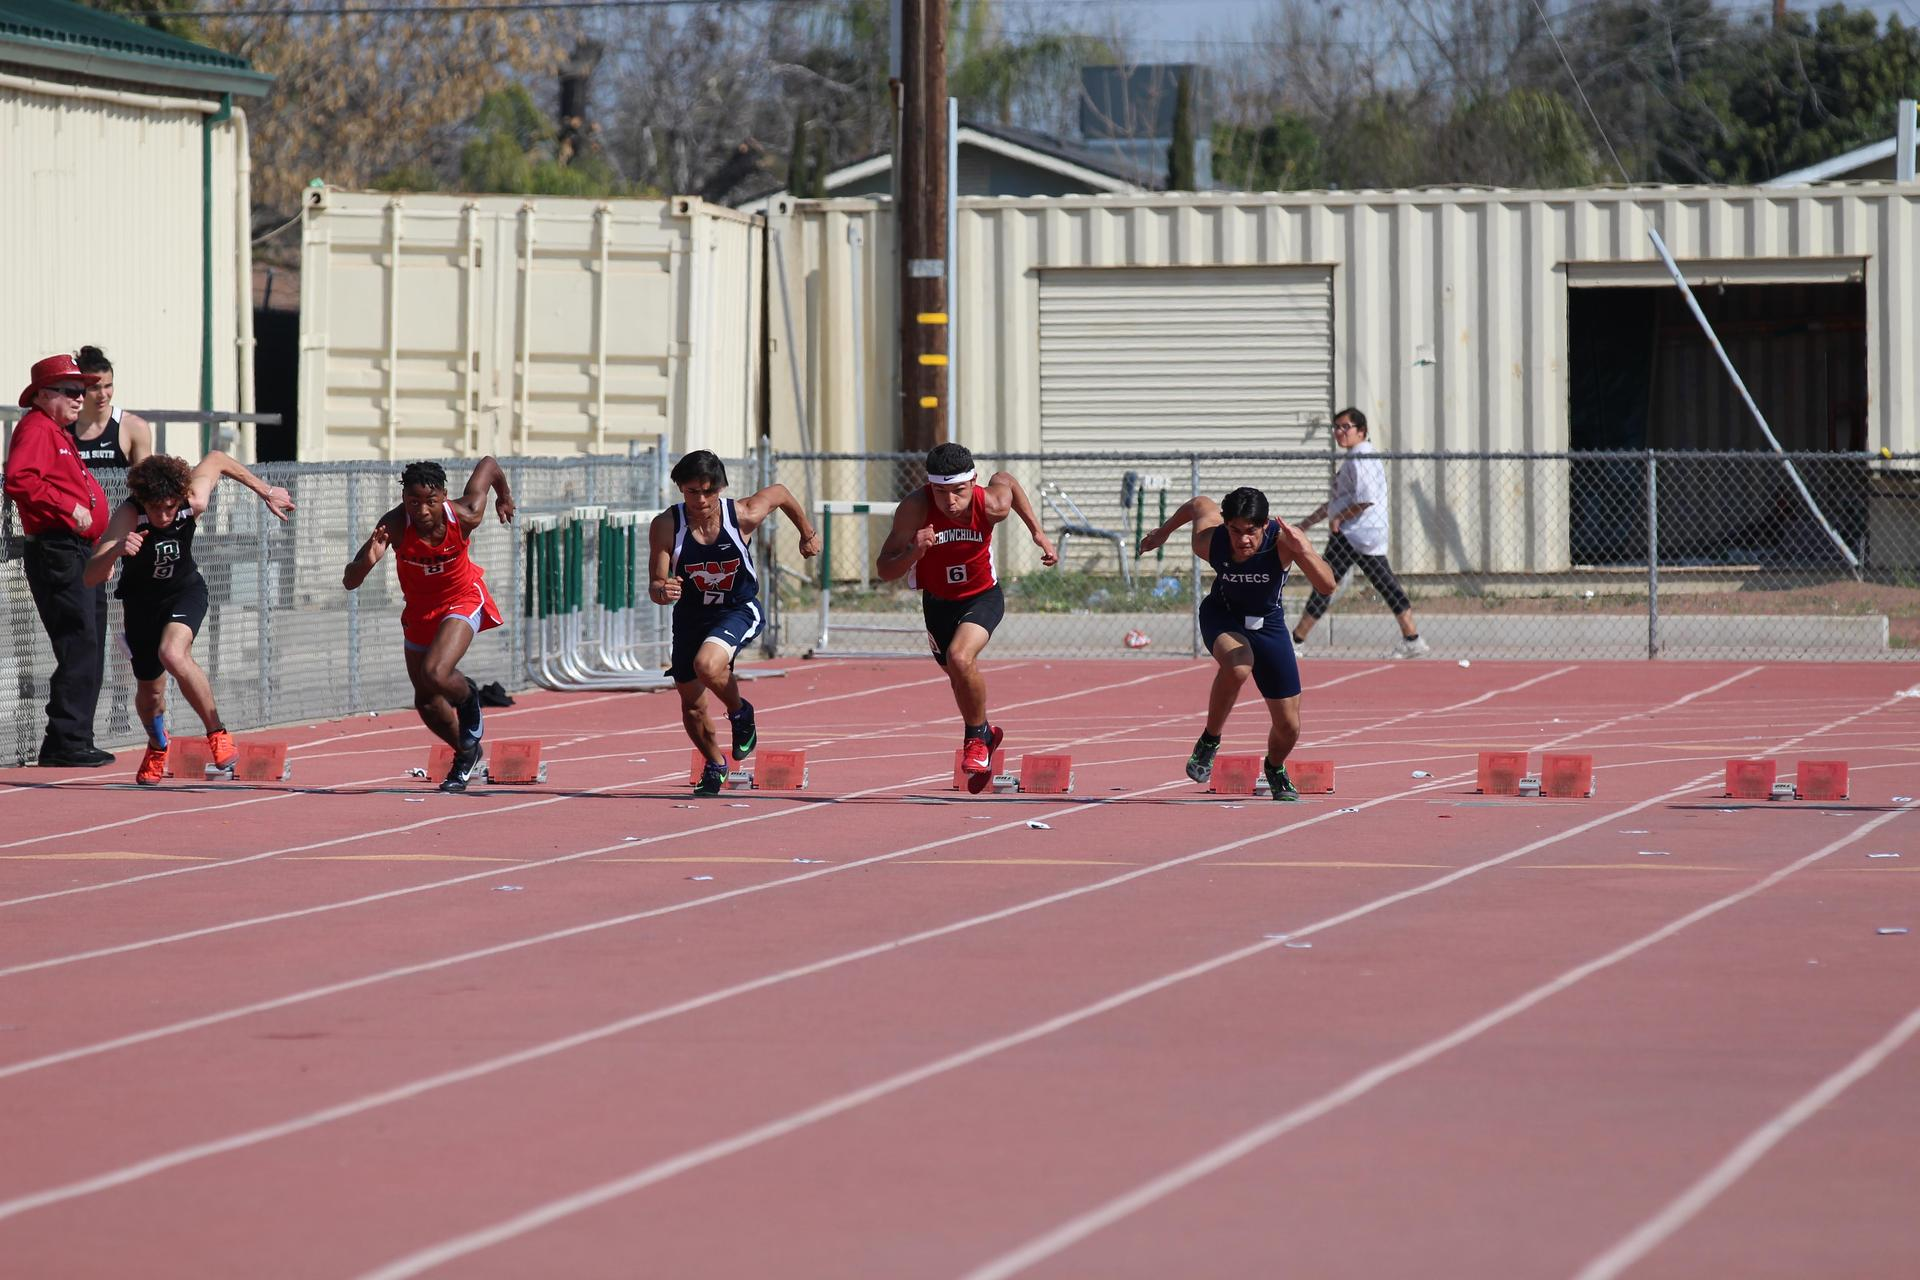 Chowchilla athletes competing in DinubaChowchilla athletes competing in Dinuba